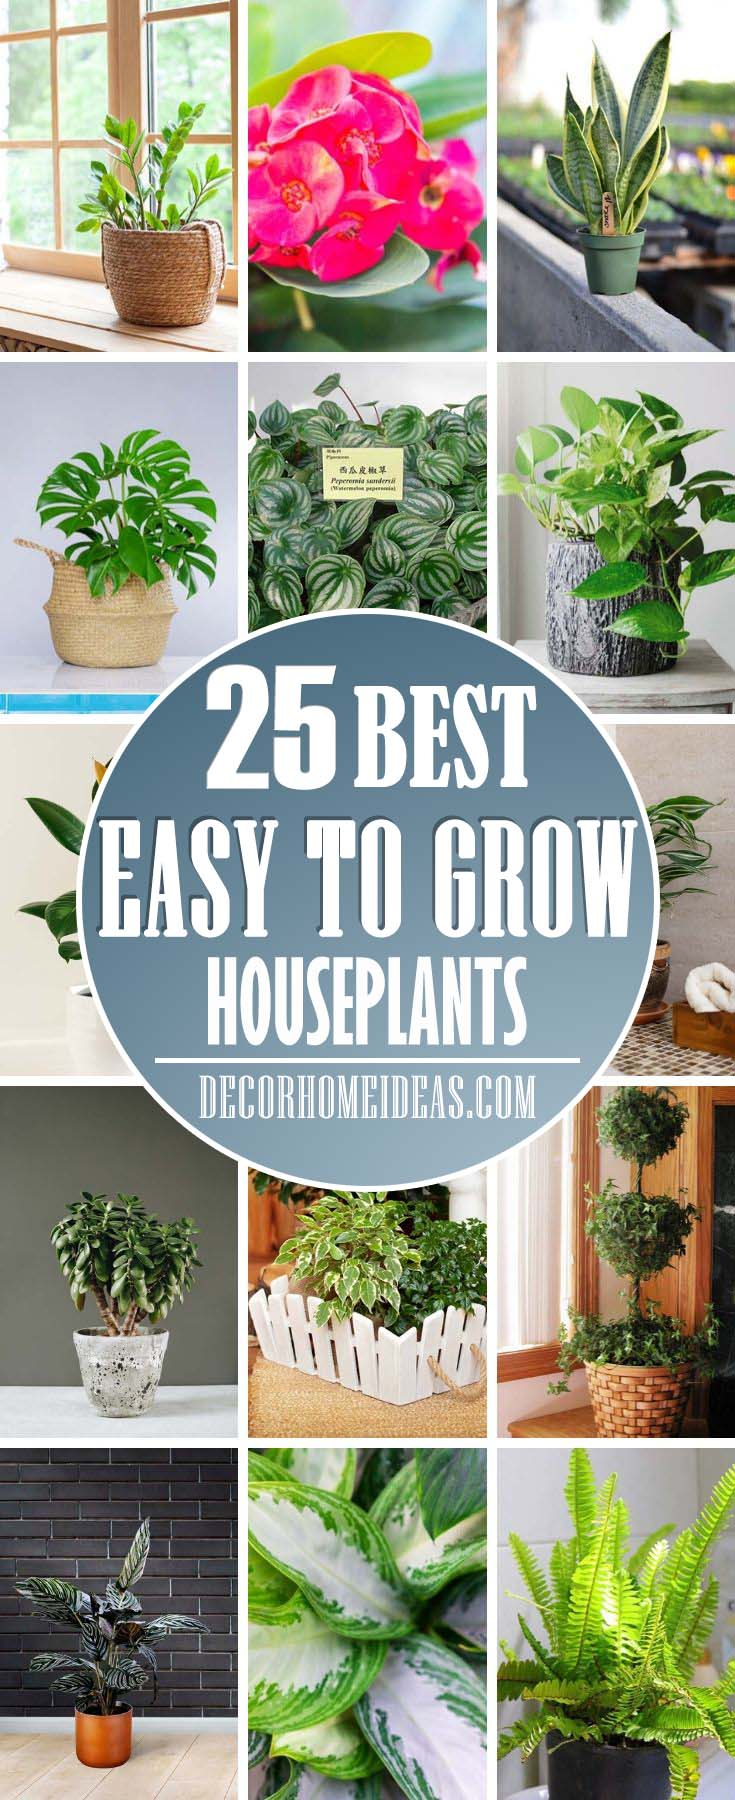 Easy To Grow Houseplants. Take a look at some fantastic, easy to grow houseplants you can raise yourself at home. These plants could be grown even by a beginner.  #houseplant #grow #easy #decorhomeideas